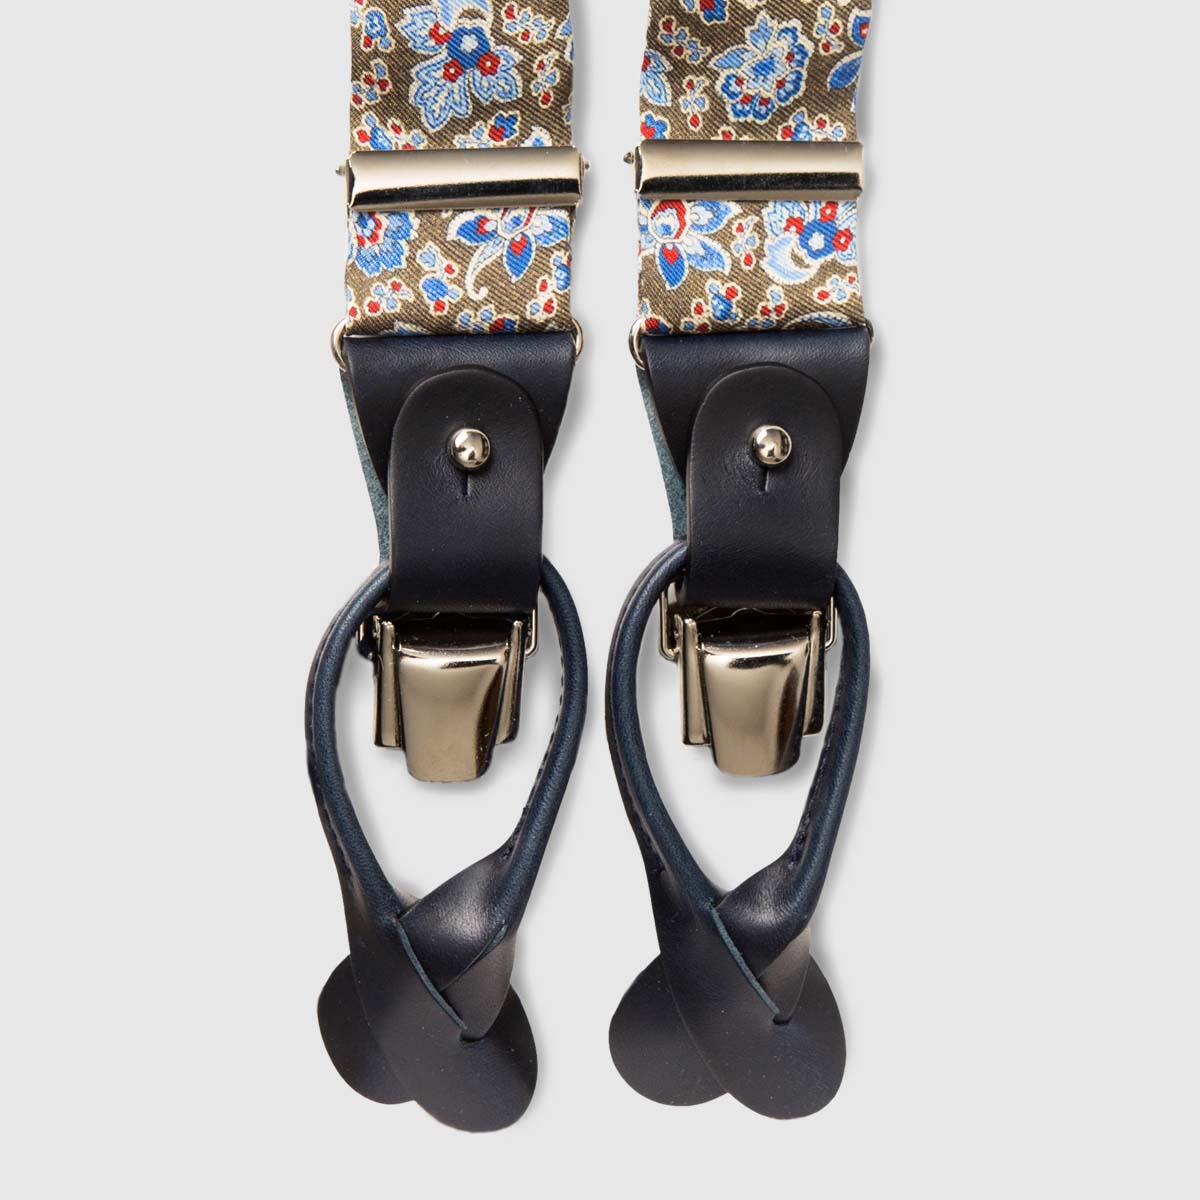 Printed Silk Green braces with black leather ends